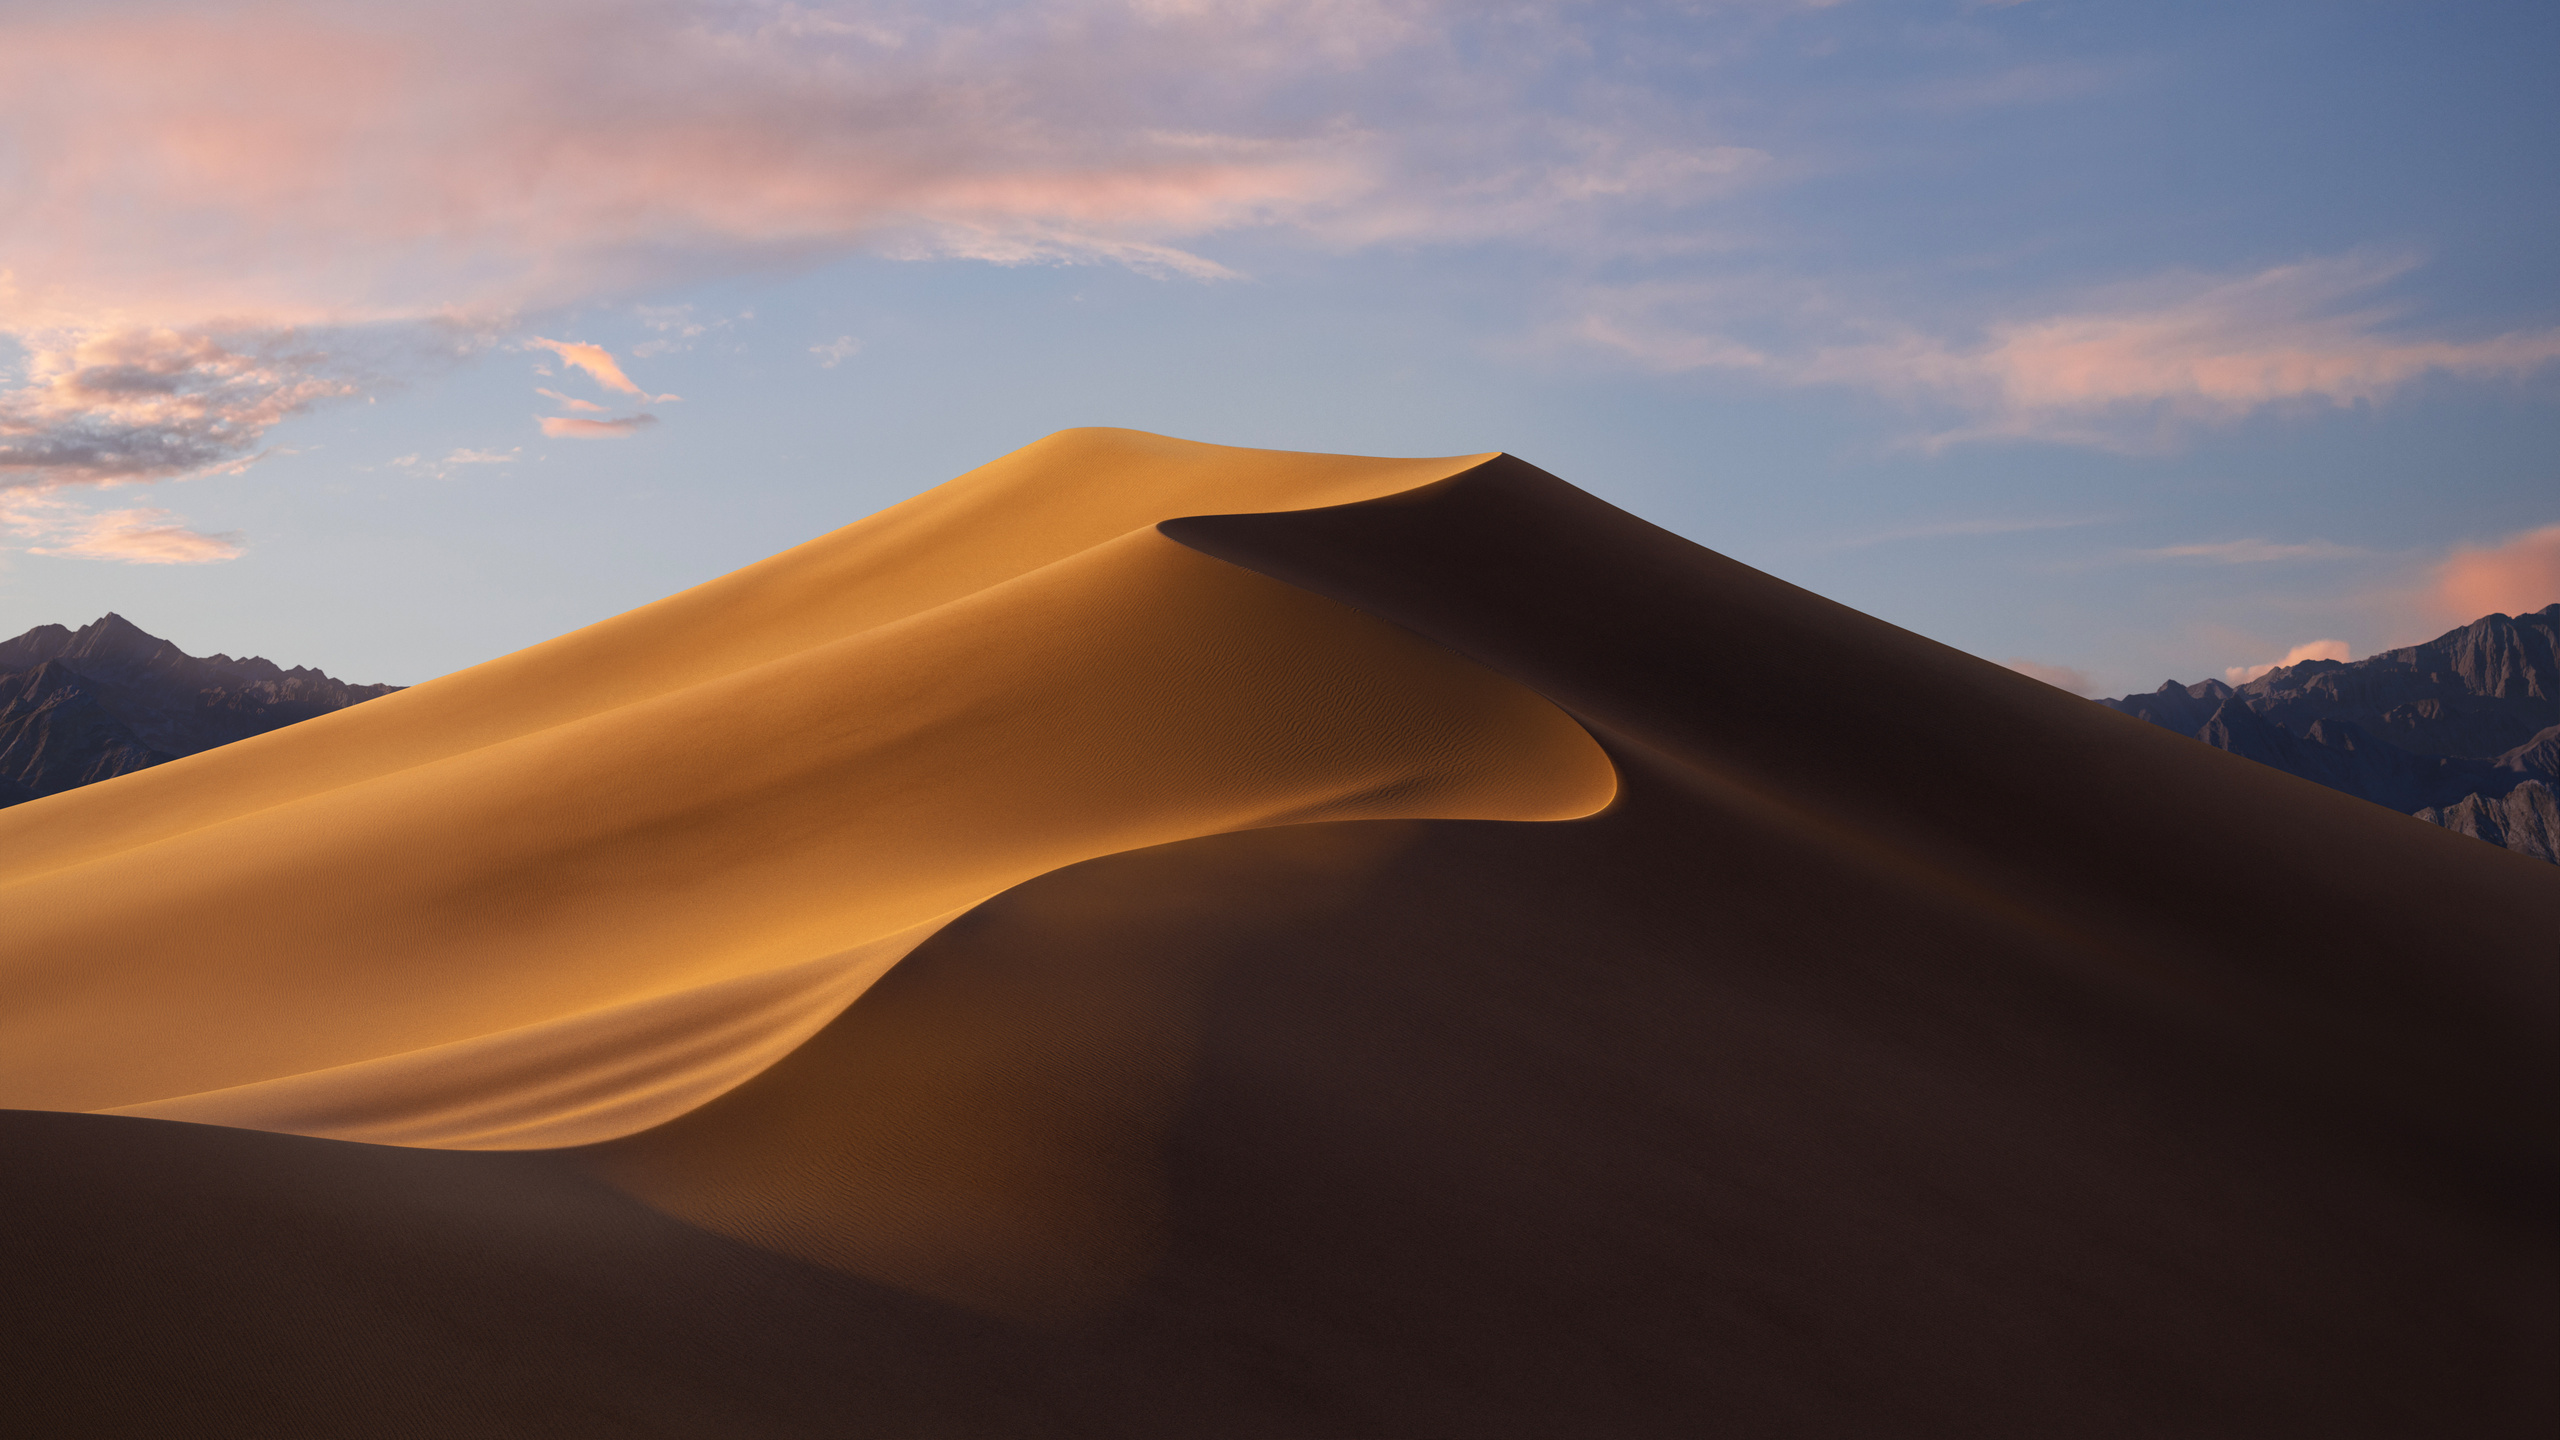 2560x1440 macos mojave day mode stock 1440p resolution hd 4k